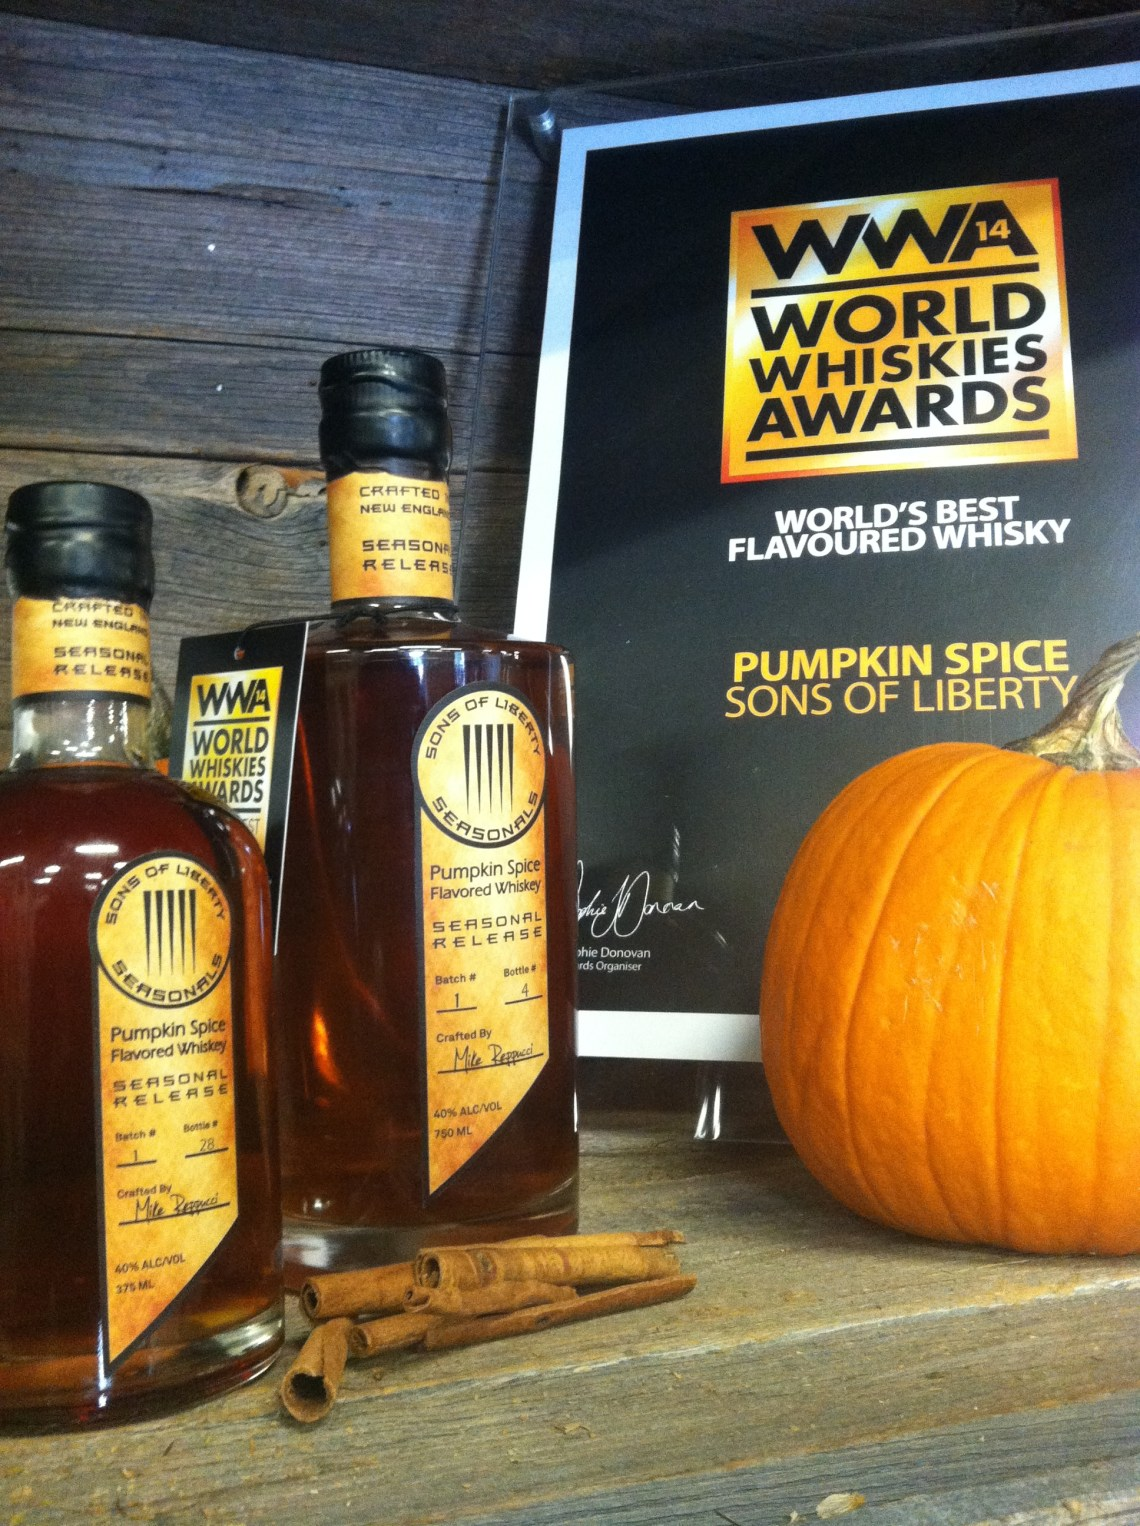 Sons of Liberty Pumpkin Spice Flavored Whiskey (2014)